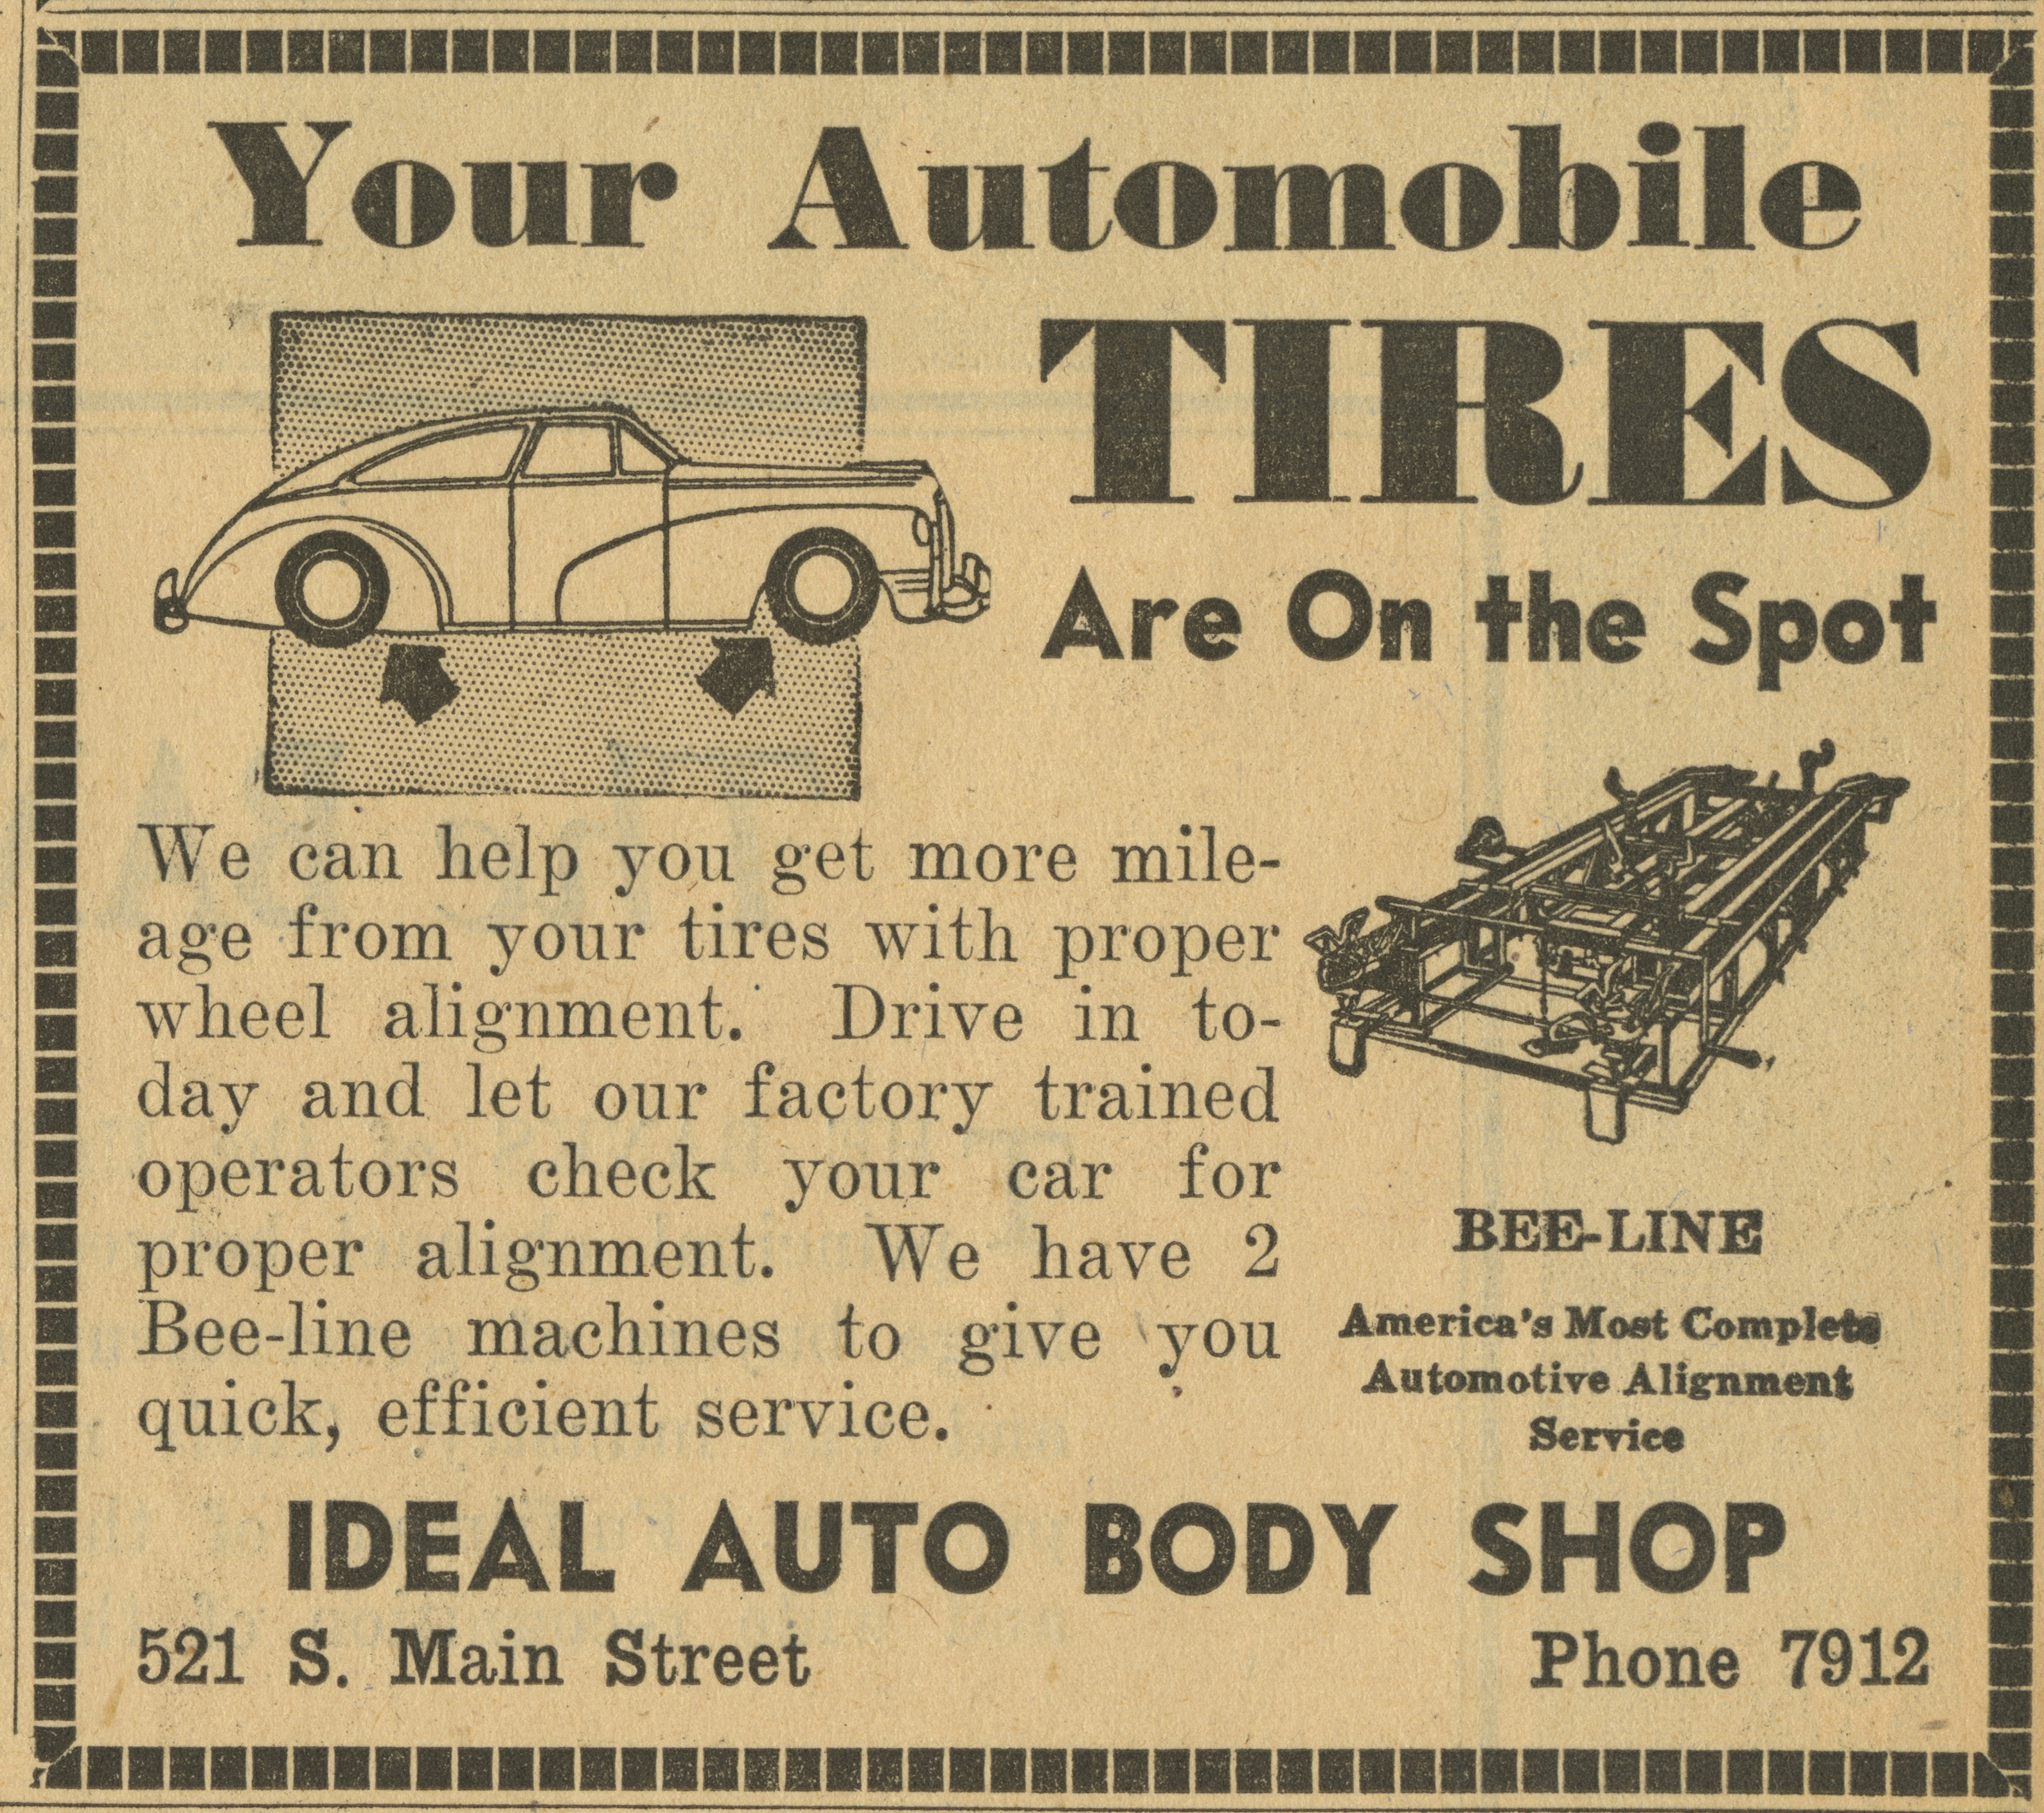 Ideal Auto Body Shop [advertisement] image